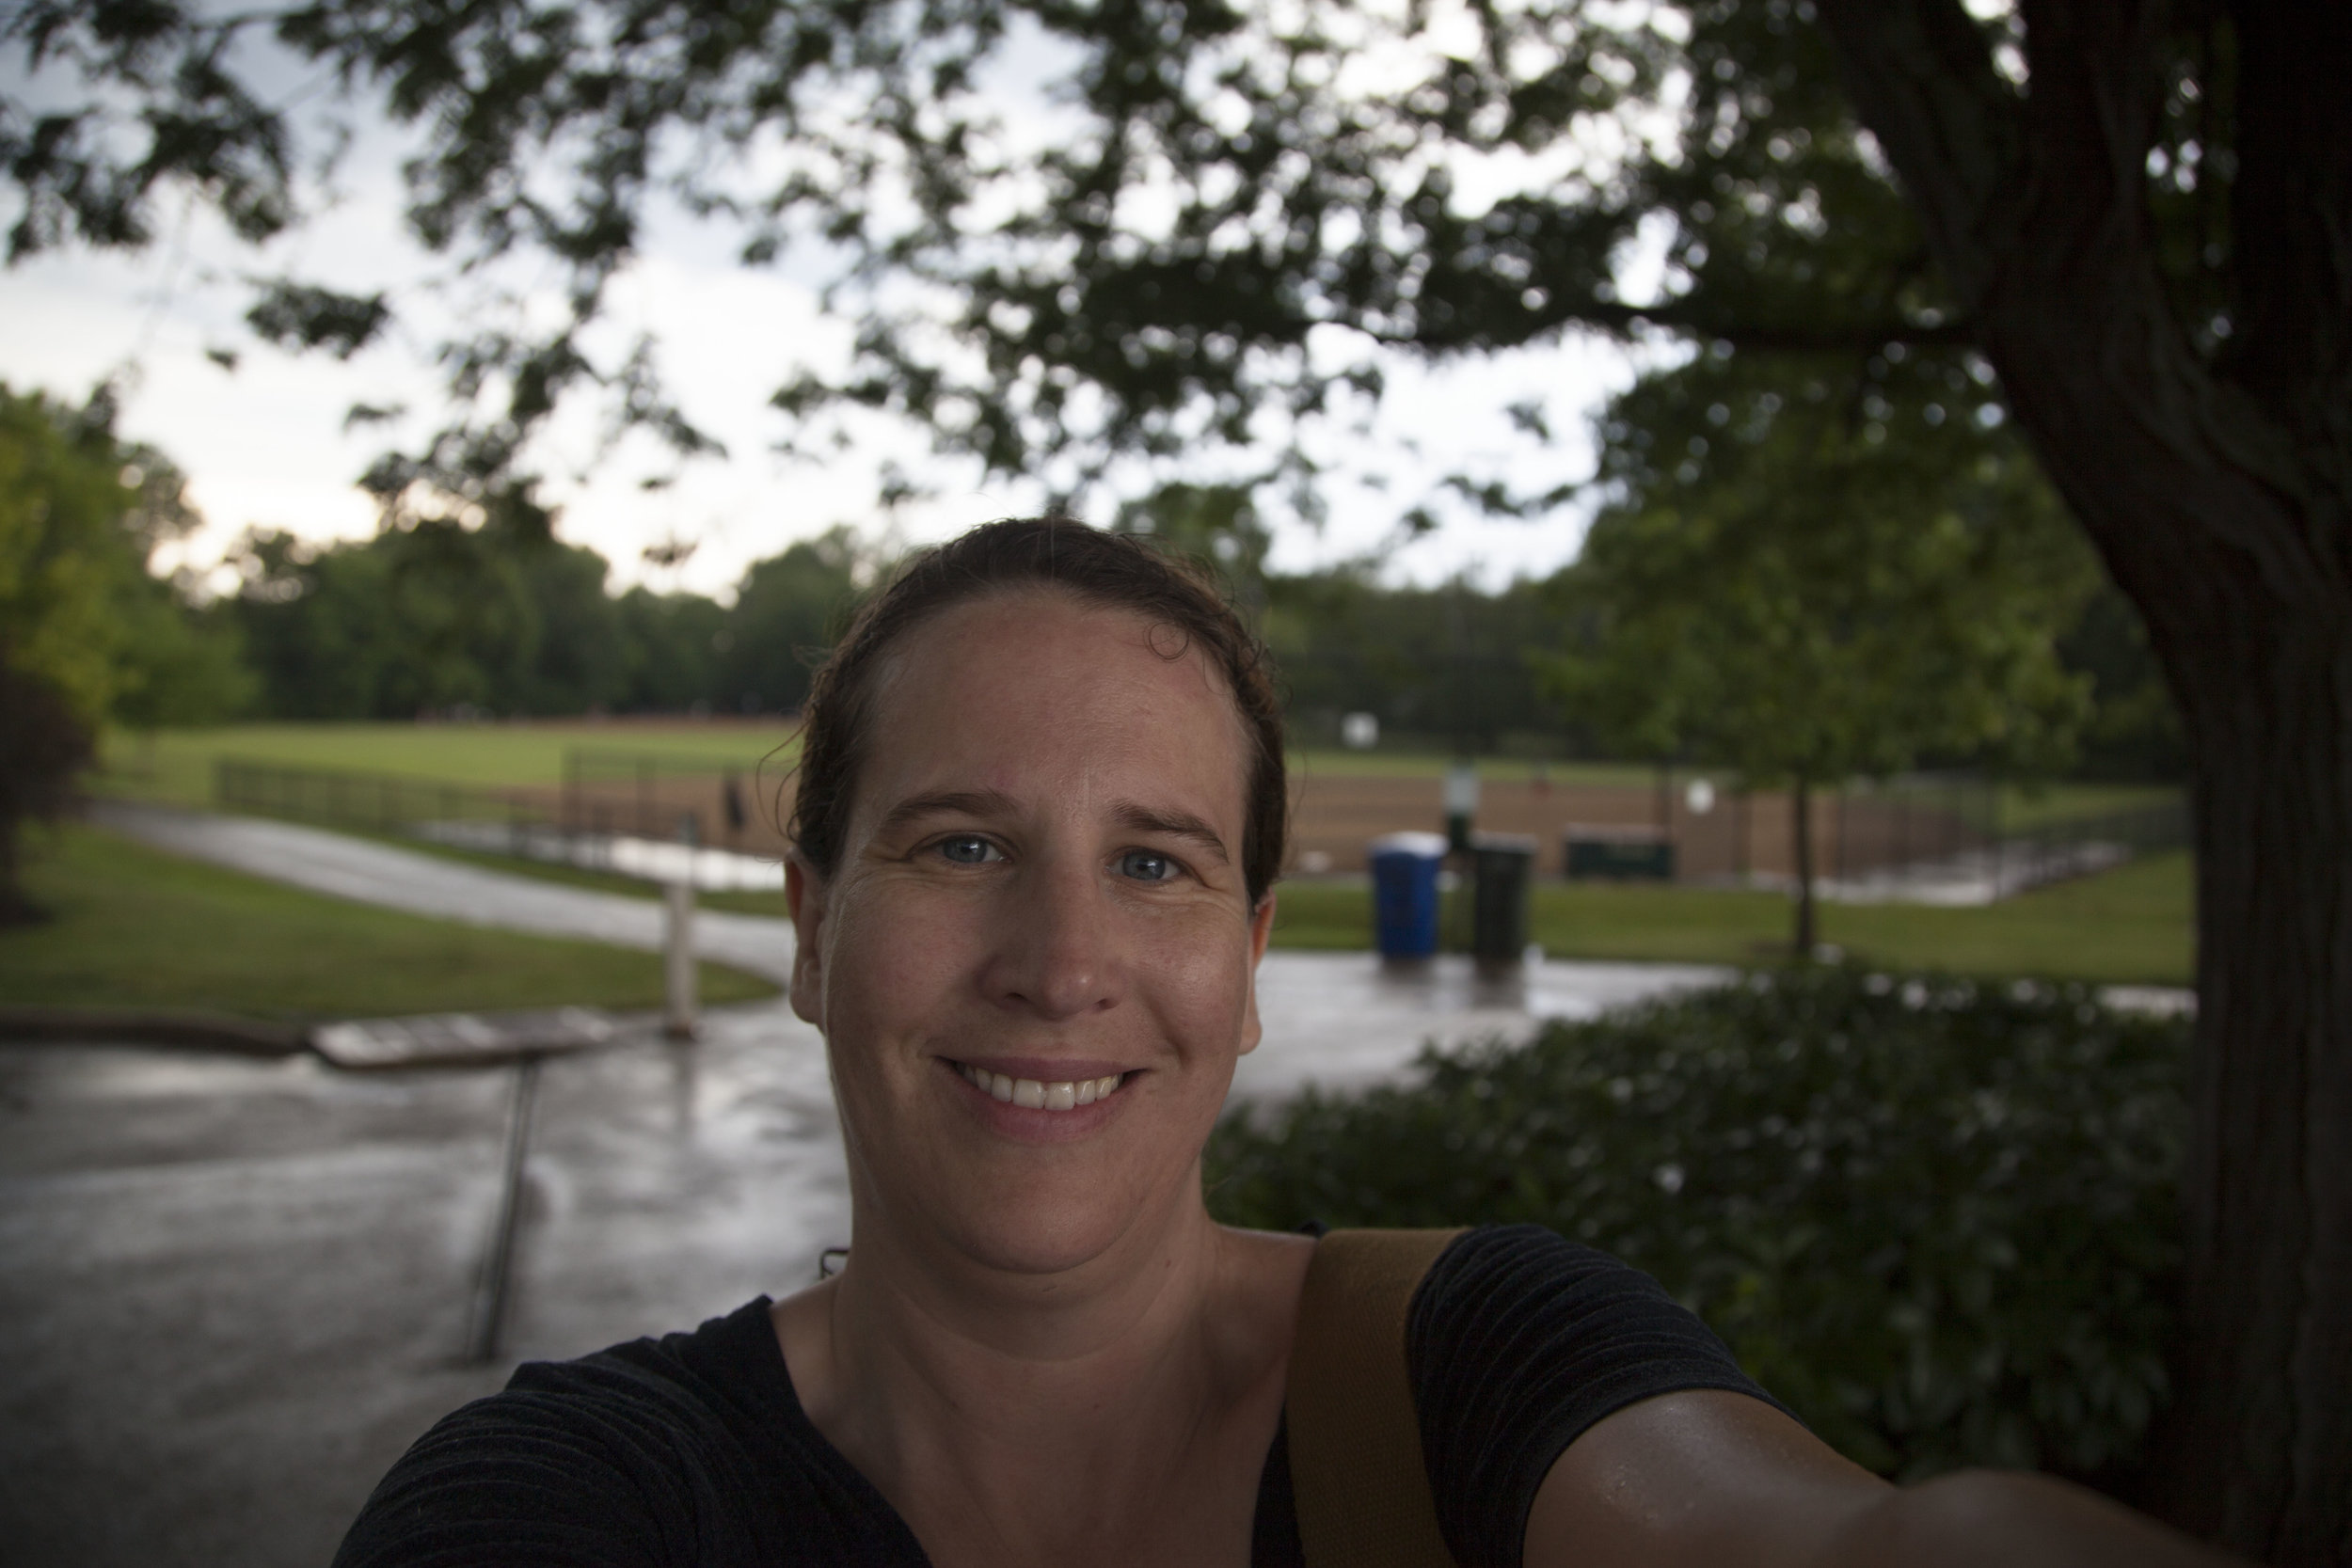 Day 24 - I played baseball in the rain